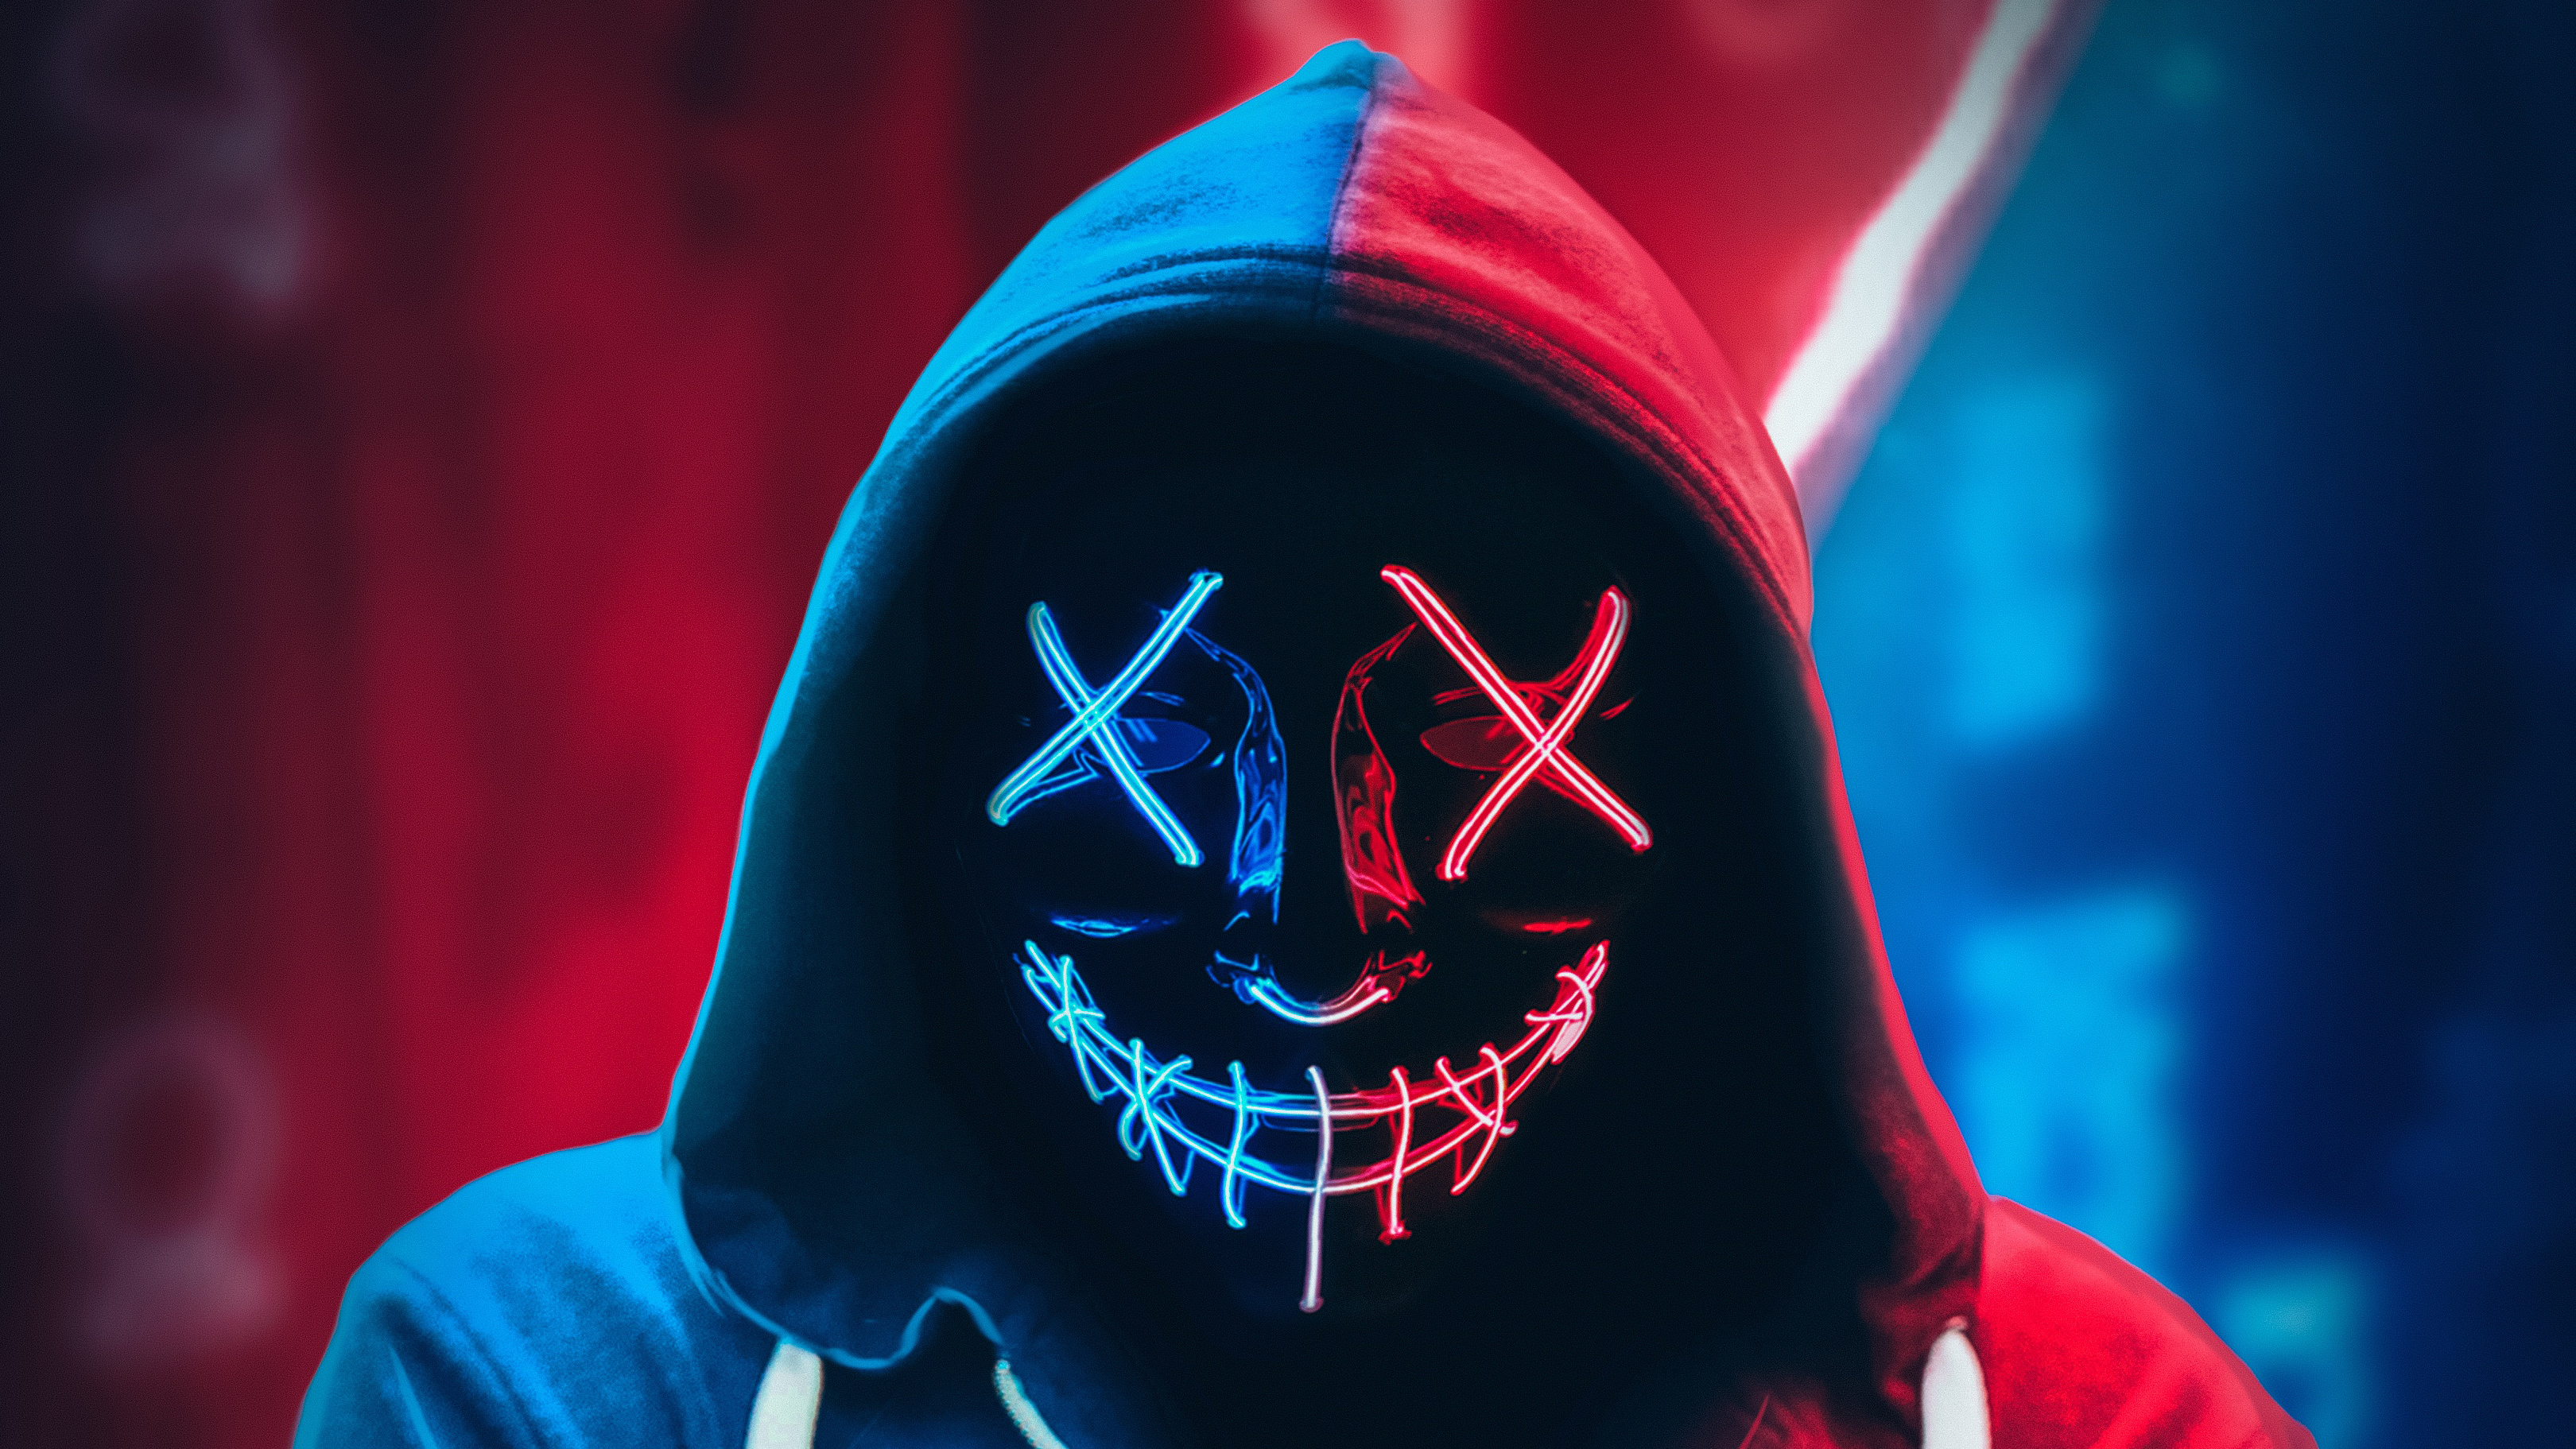 Neon Mask Hoodie 4k Hd Photography 4k Wallpapers Images